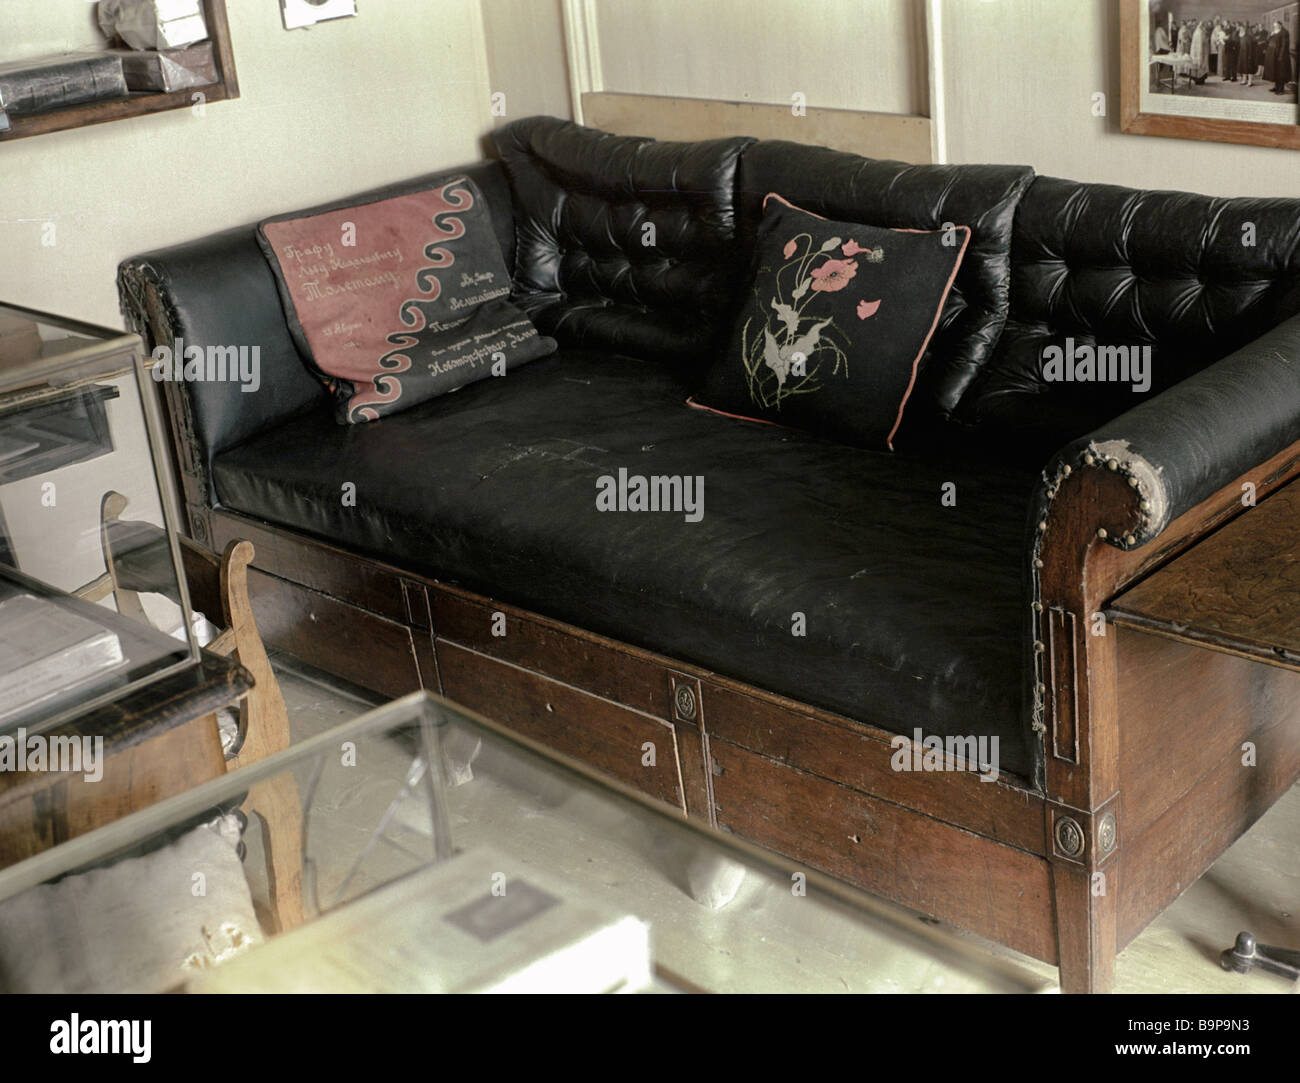 The leather sofa in the Lev Tolstoy house museum at Yasnaya Polyana - Stock Image